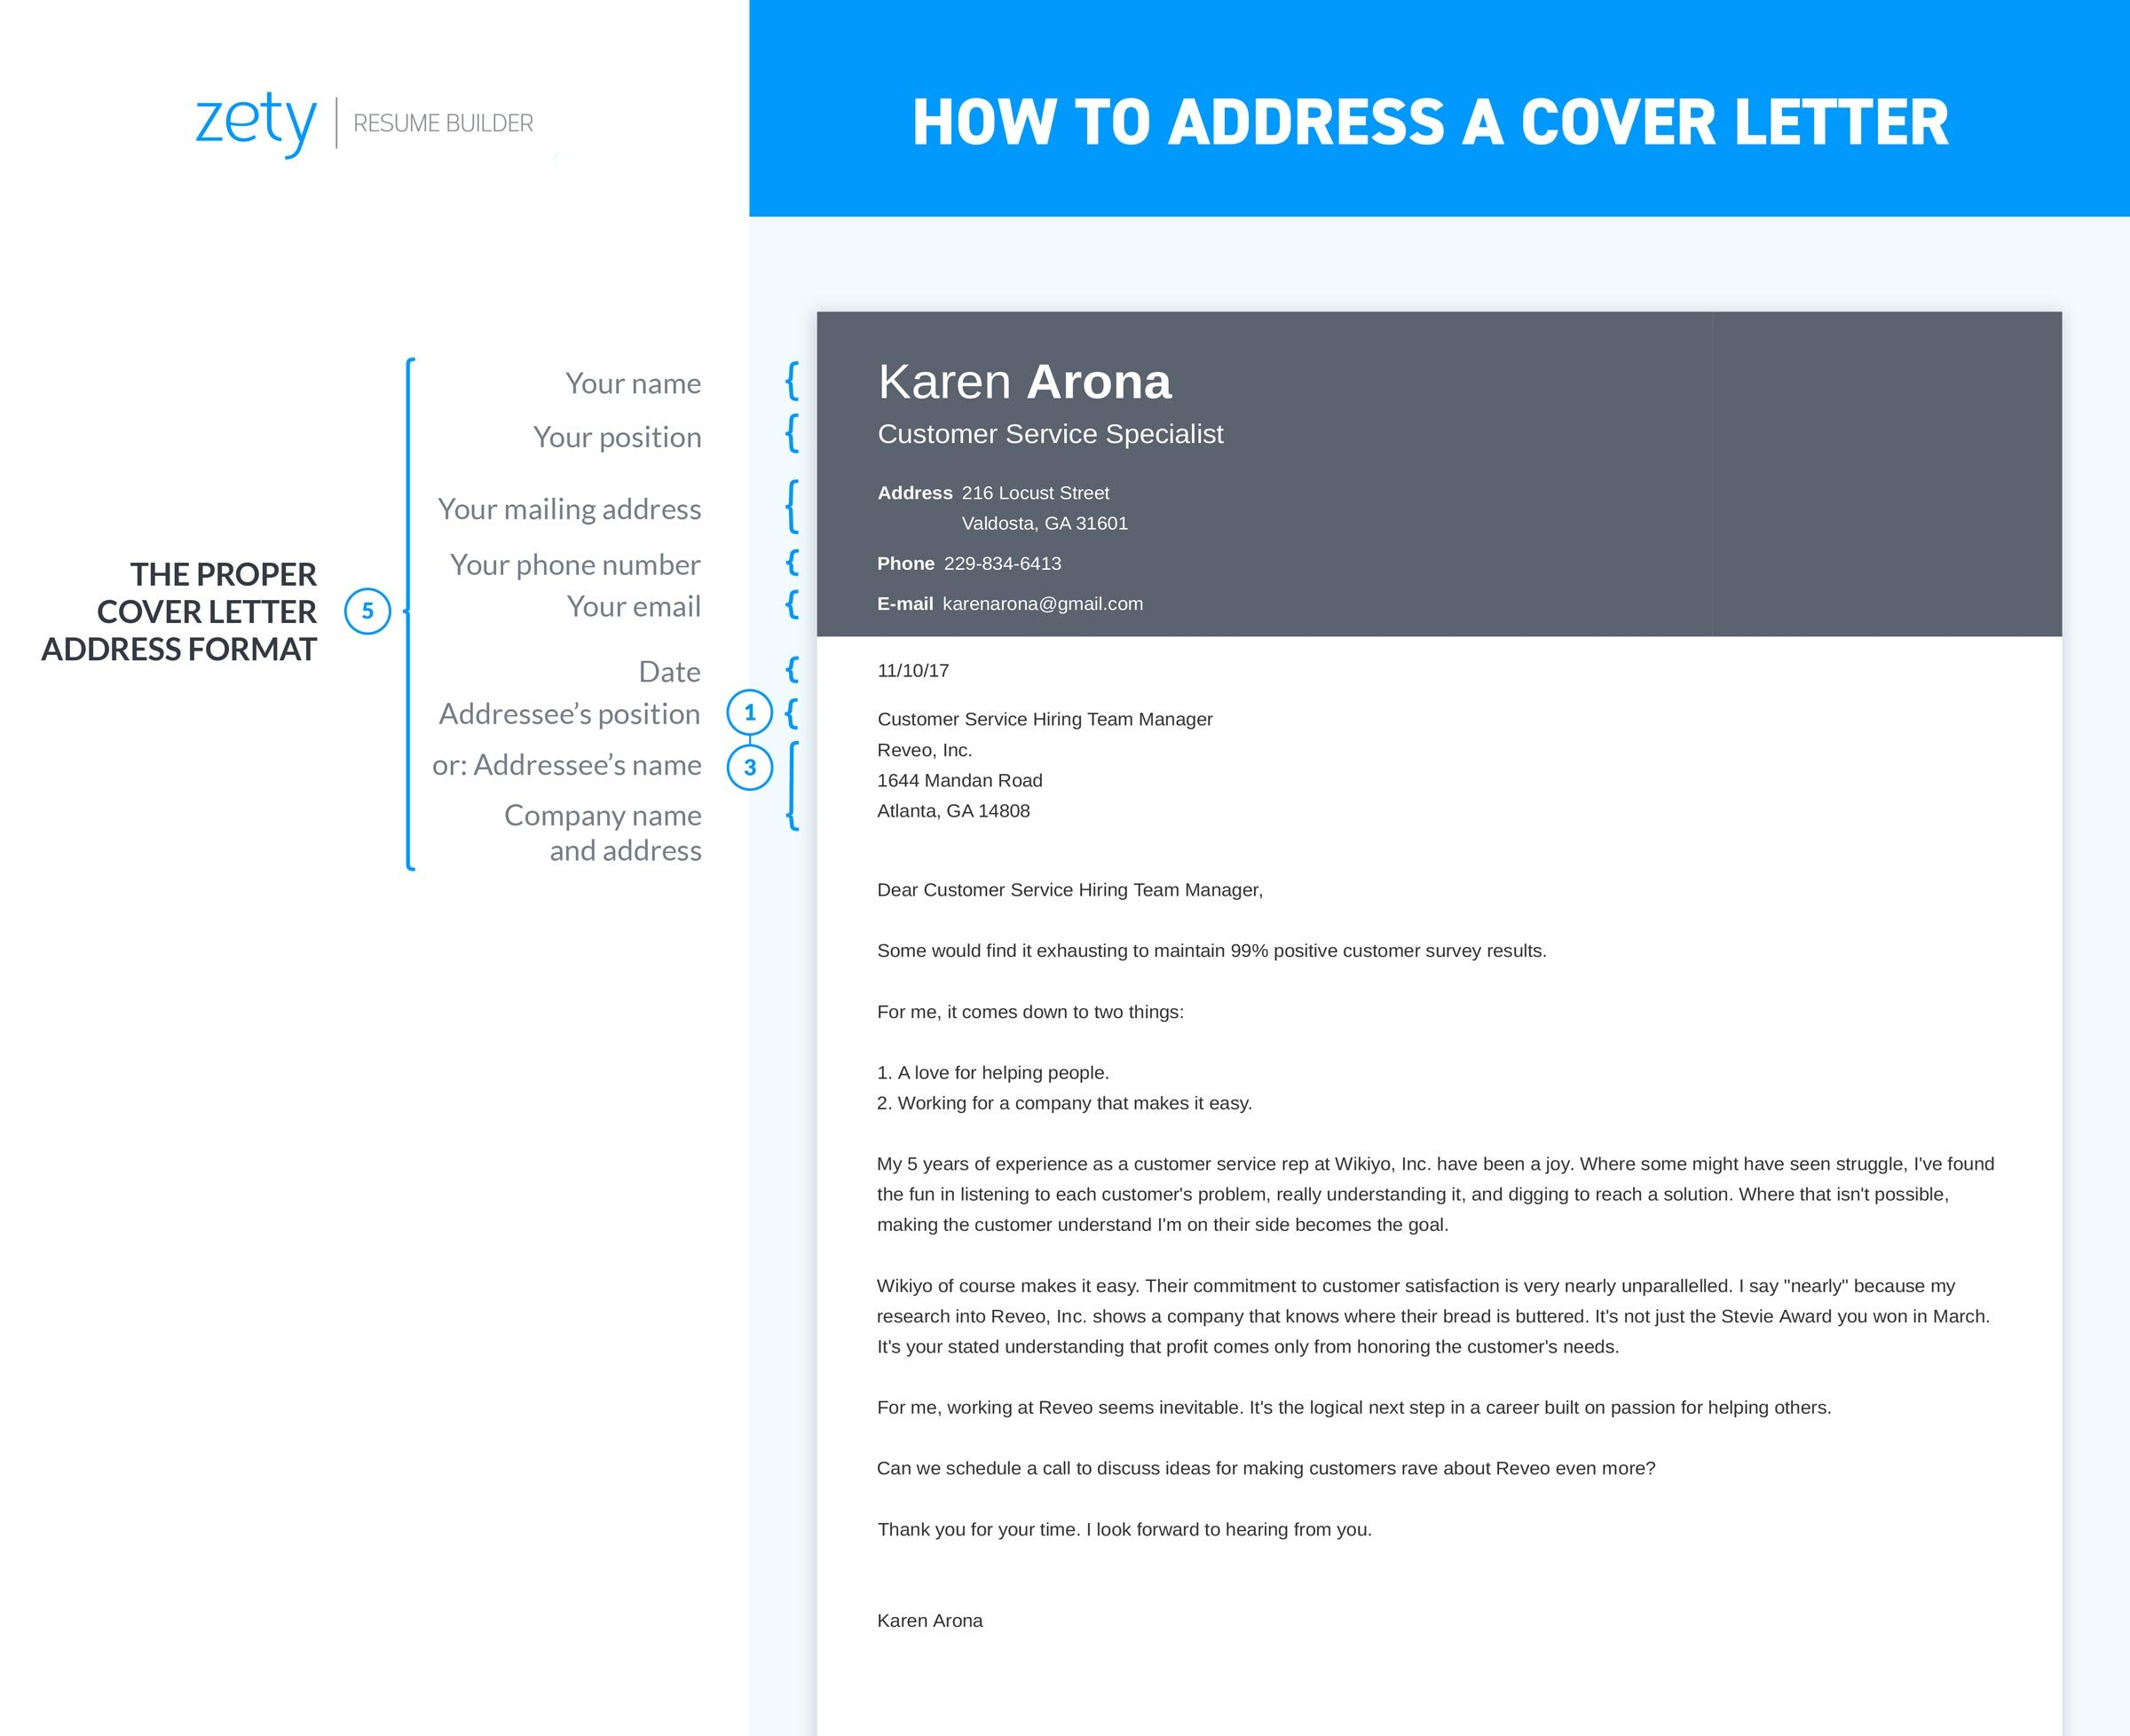 address a letter